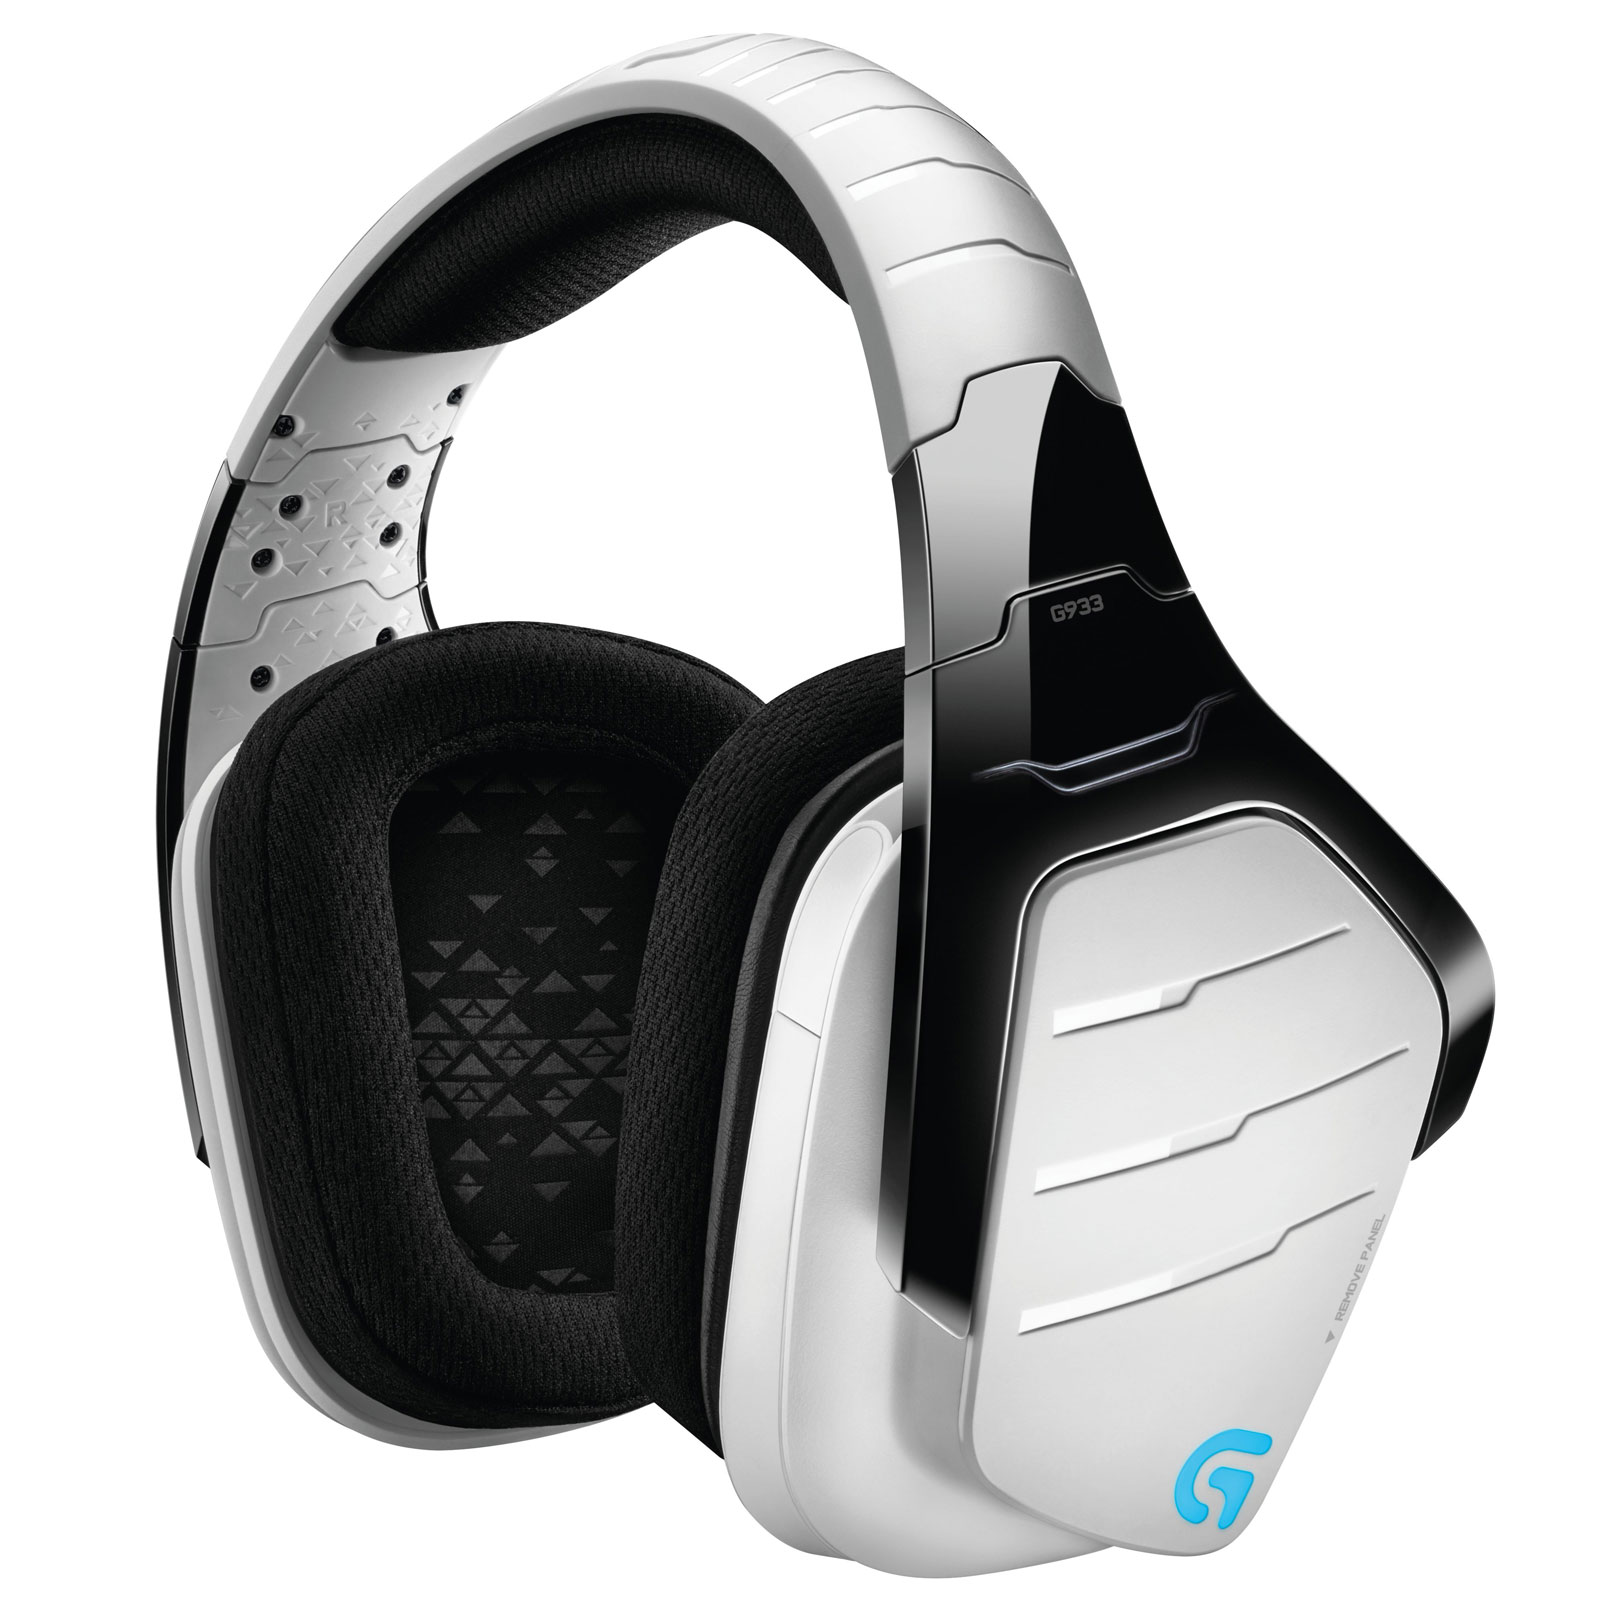 Micro-casque Logitech G933 Artemis Spectrum RGB Wireless 7.1 Surround Gaming Headset (Blanc) Casque-micro 7.1 sans fil pour gamer (compatible PC/ PlayStation 4/ Xbox One)